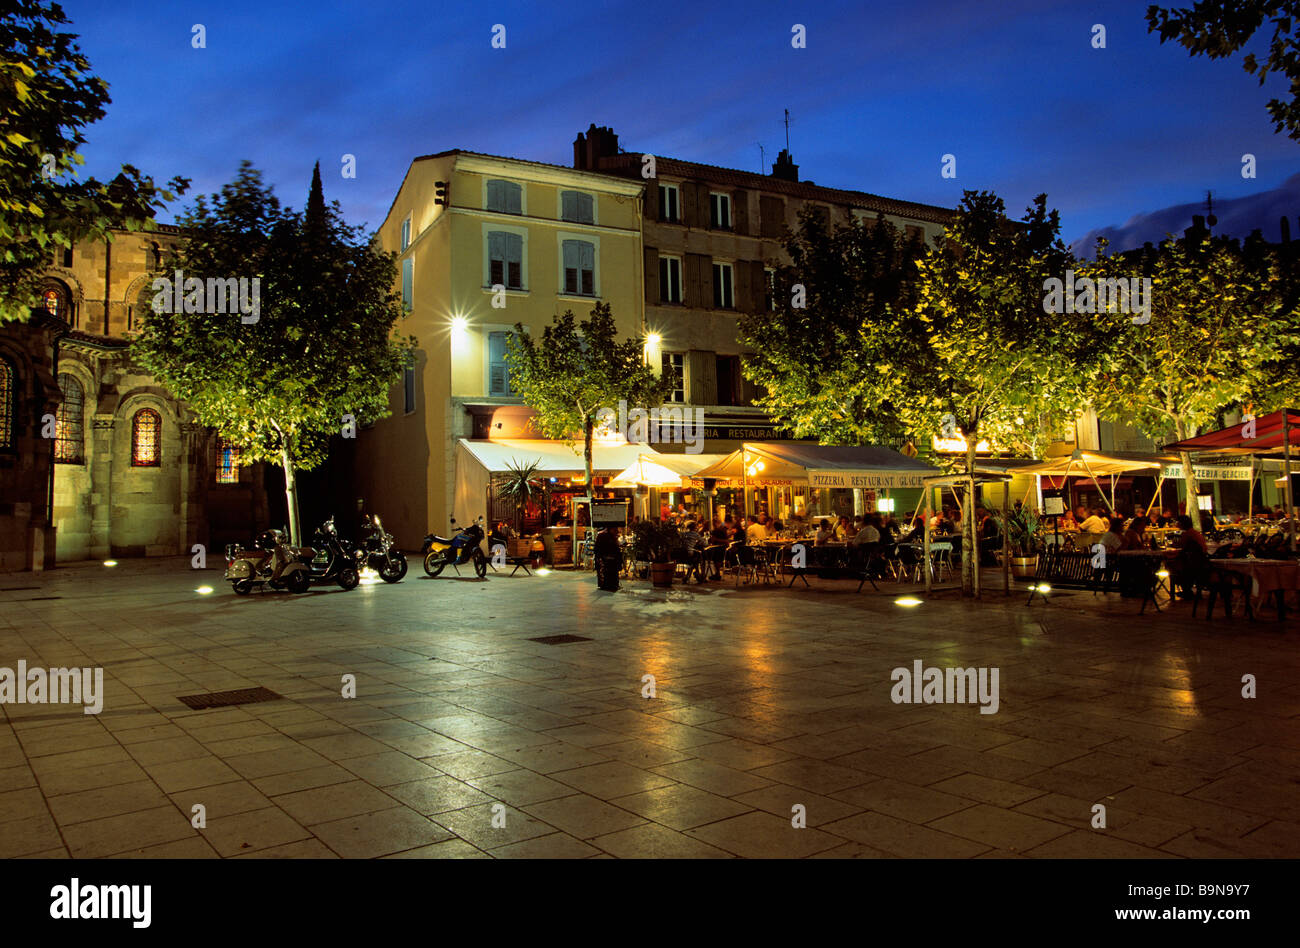 france drome valence place des clercs stock photo royalty free image 23211083 alamy. Black Bedroom Furniture Sets. Home Design Ideas